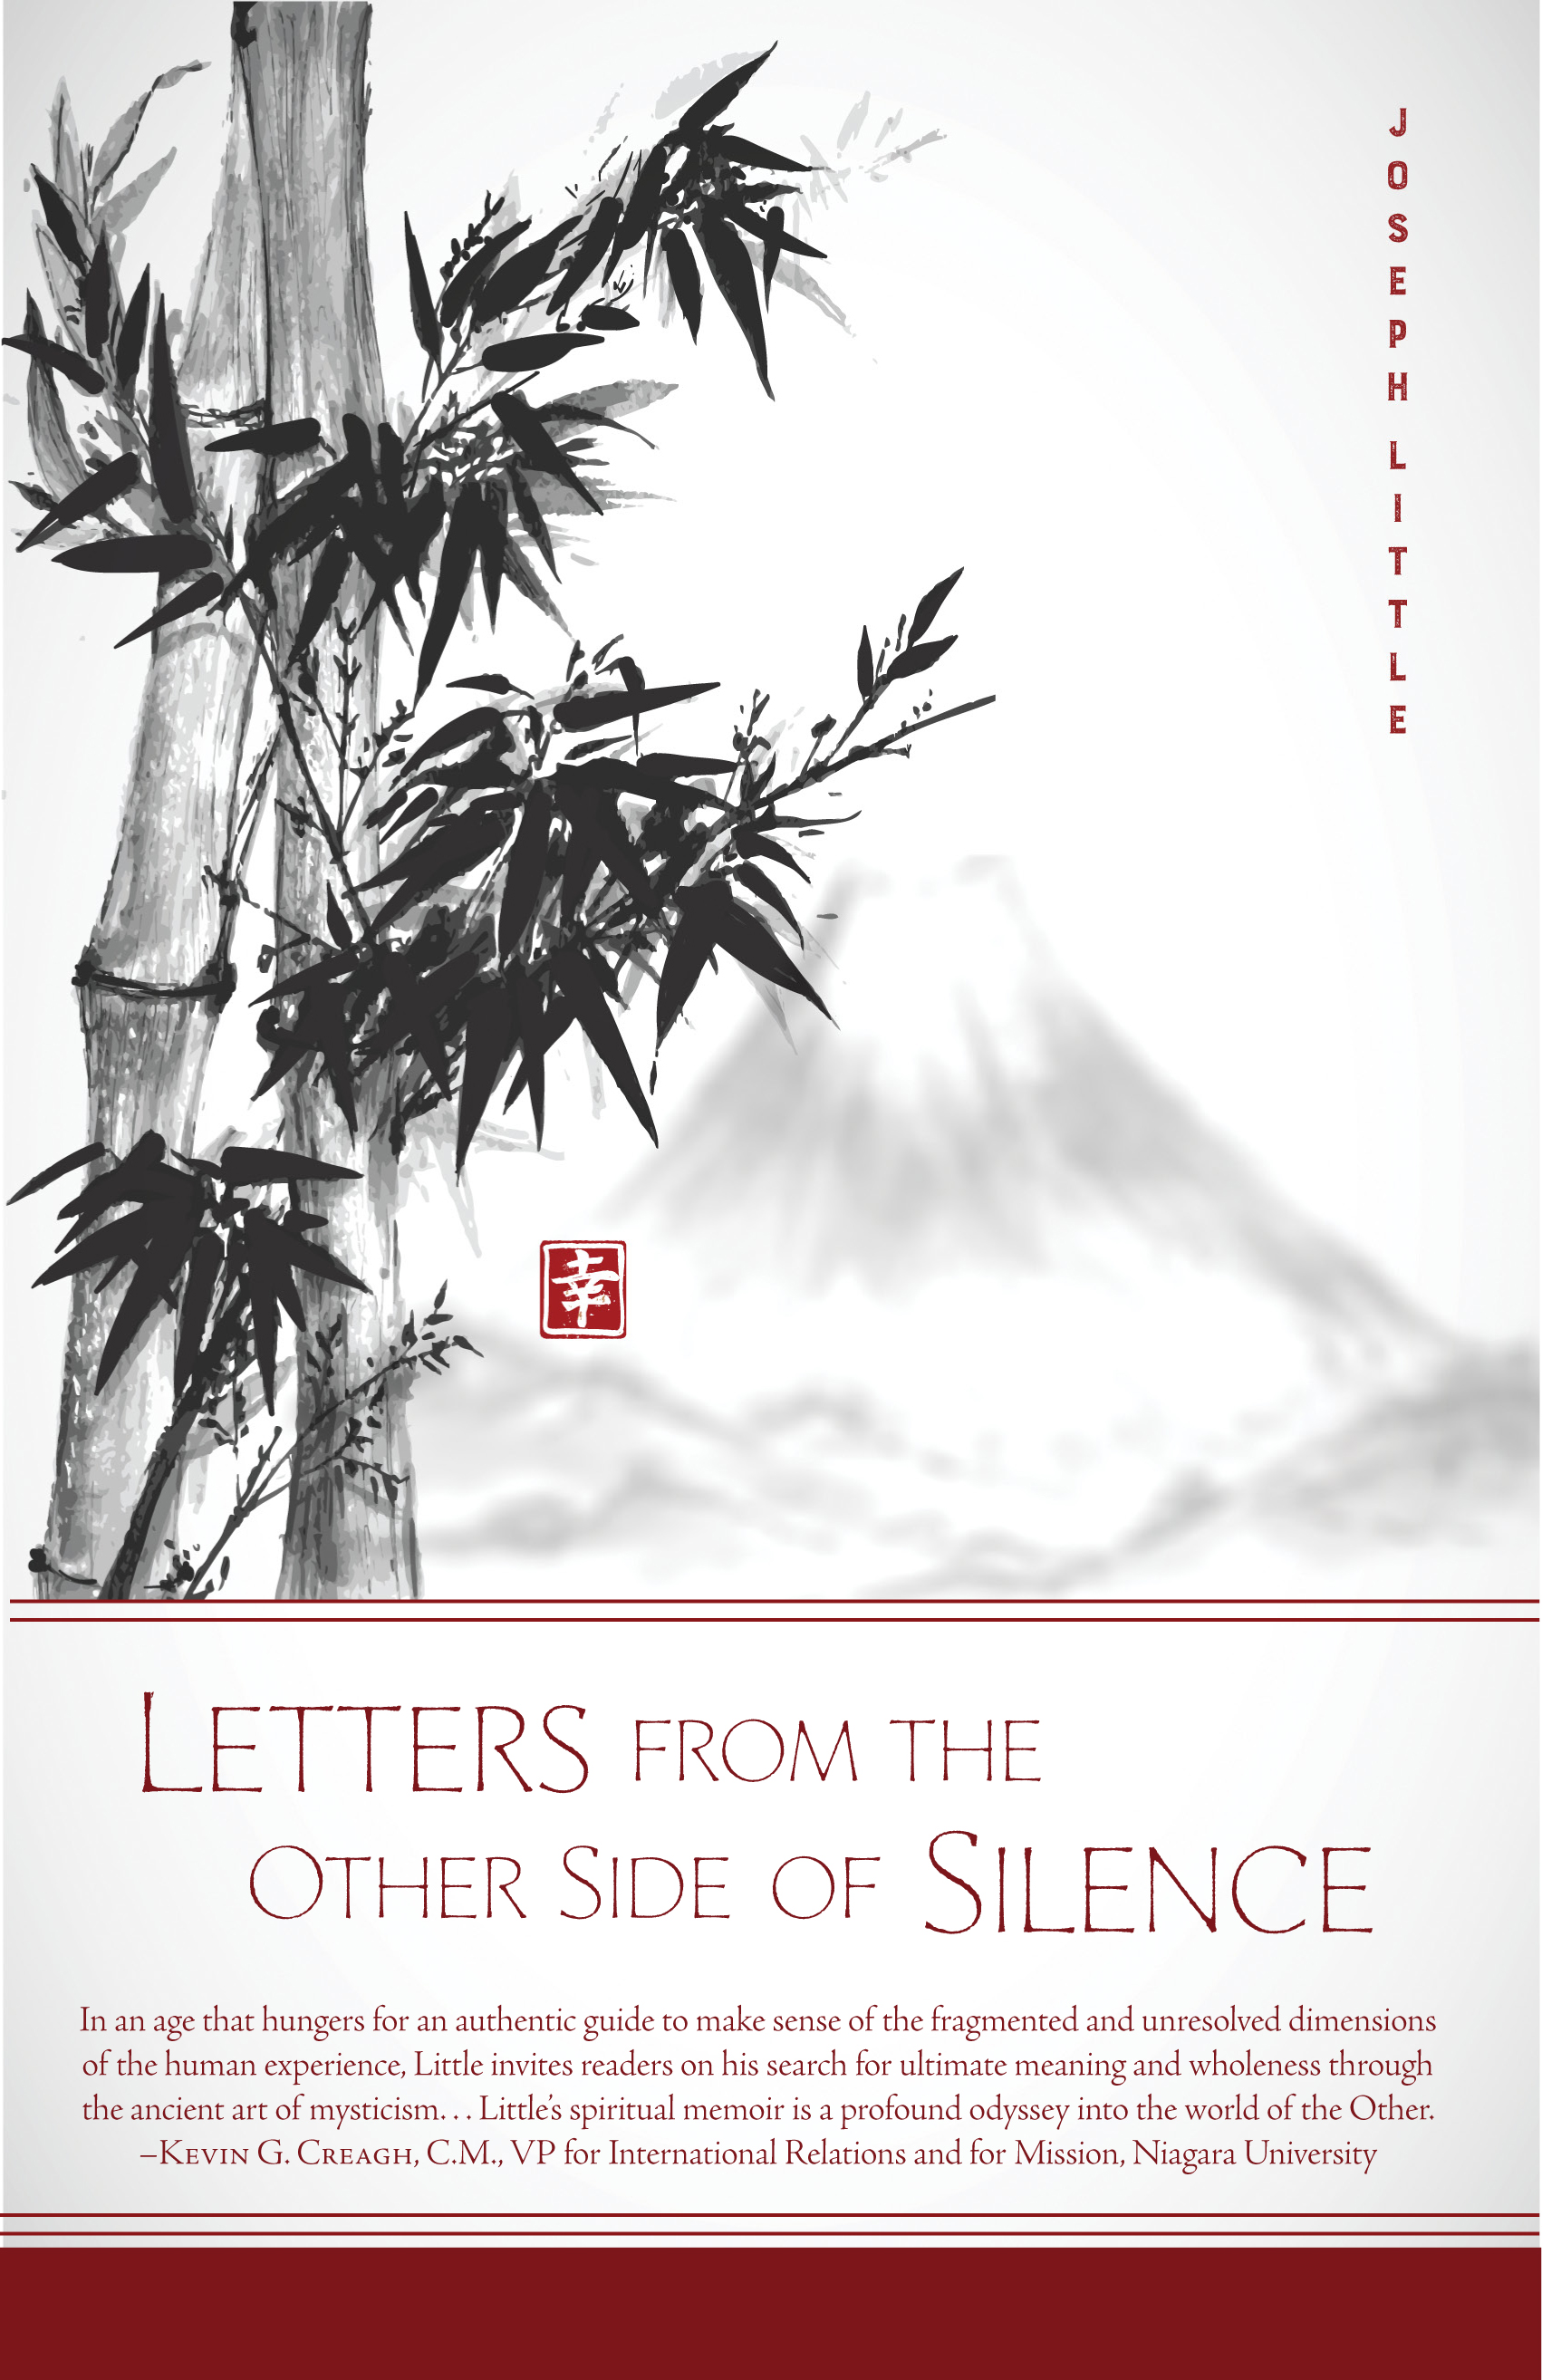 Letters from the Other Side of Silence